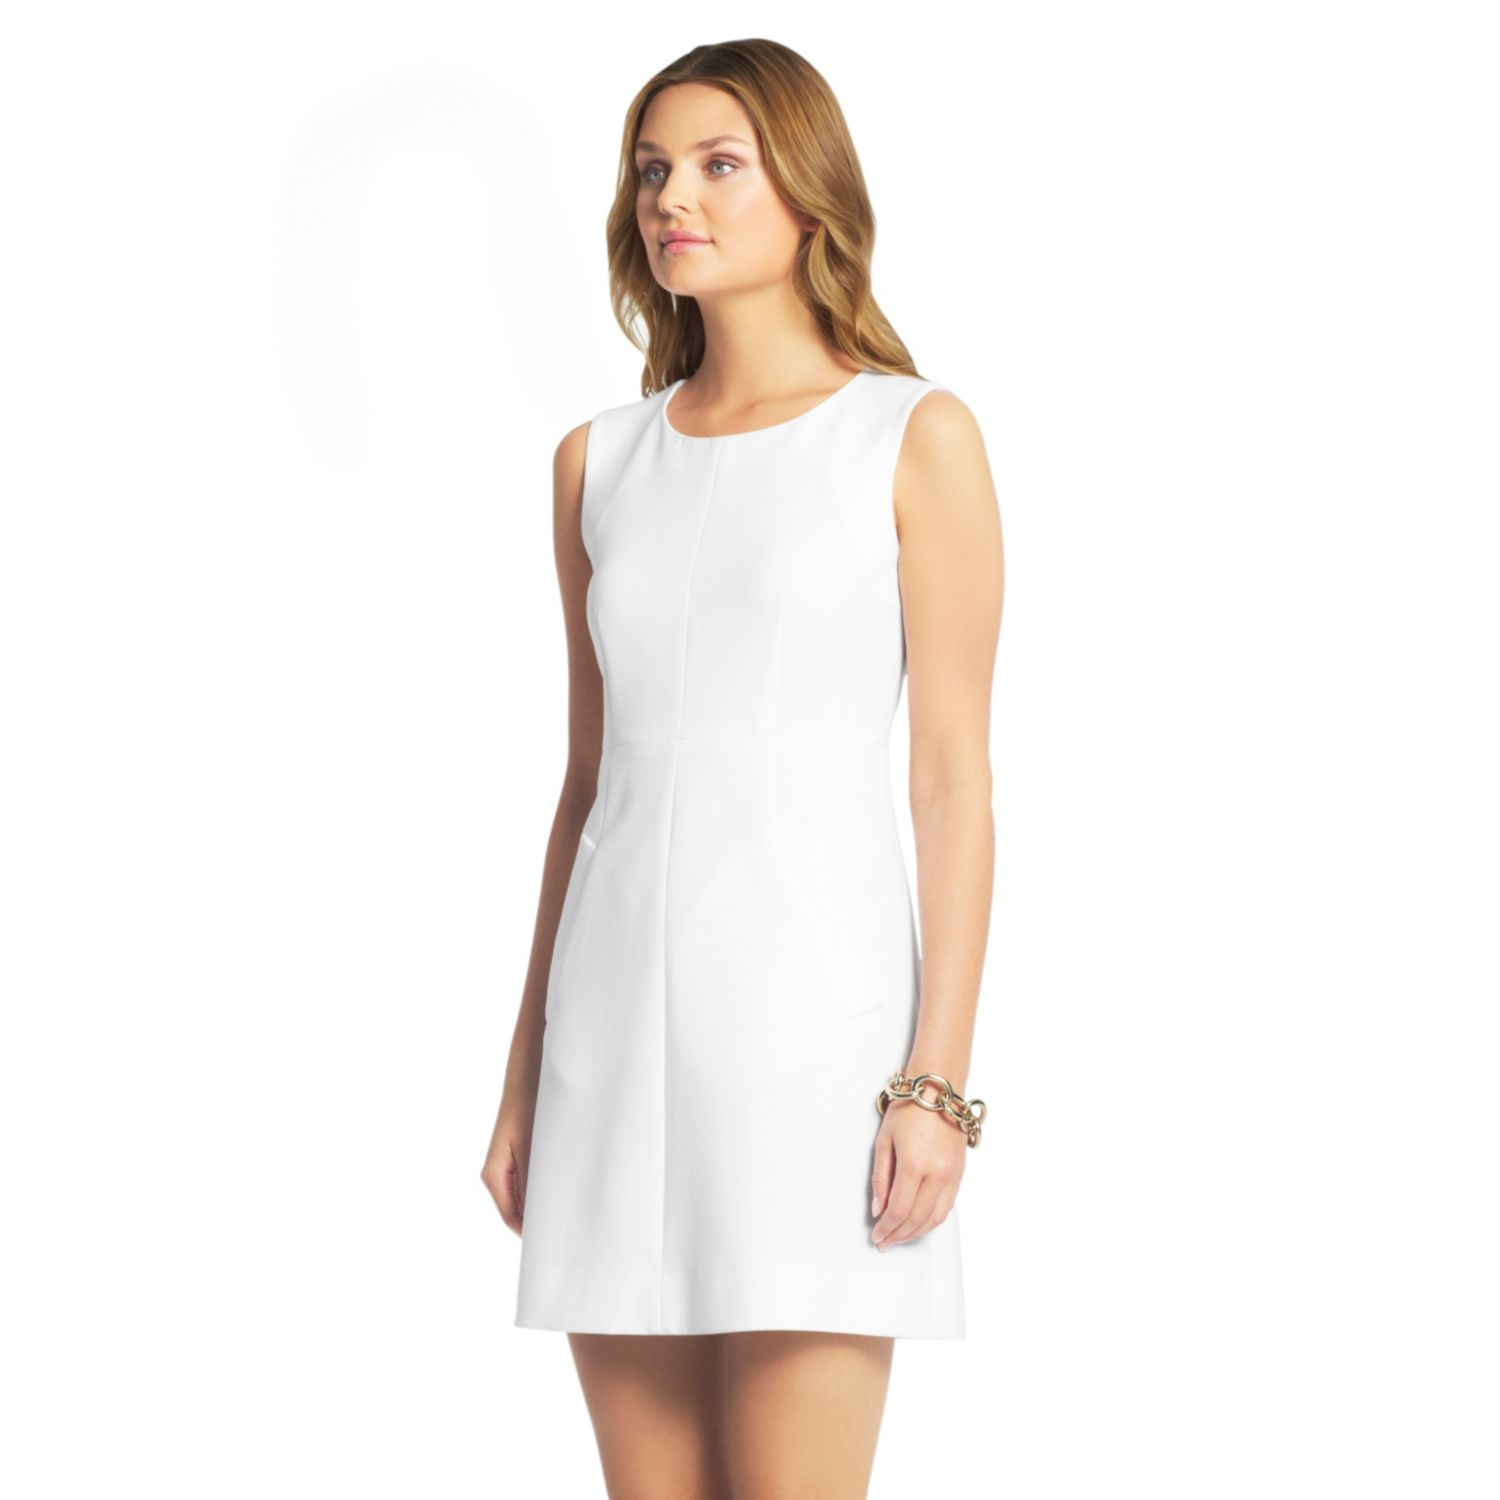 Dvf Dresses Dilly Ceramic Tunic Dress View Fullscreen